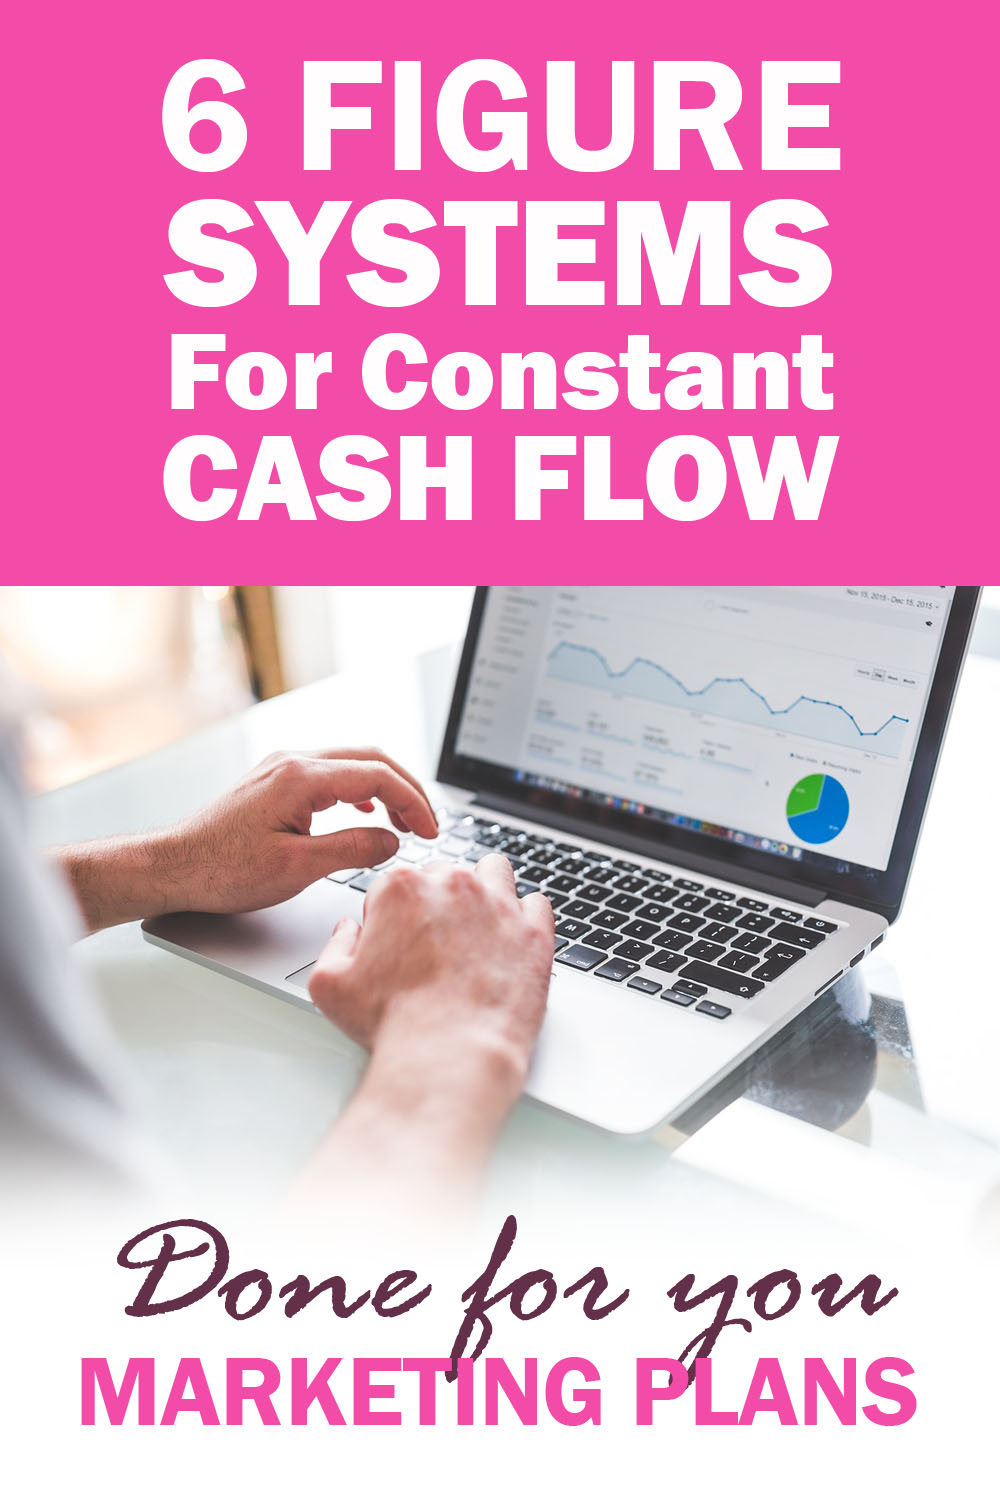 6-Figure Systems Done-For-You Marketing Plans For Constant Cash Flow.jpg